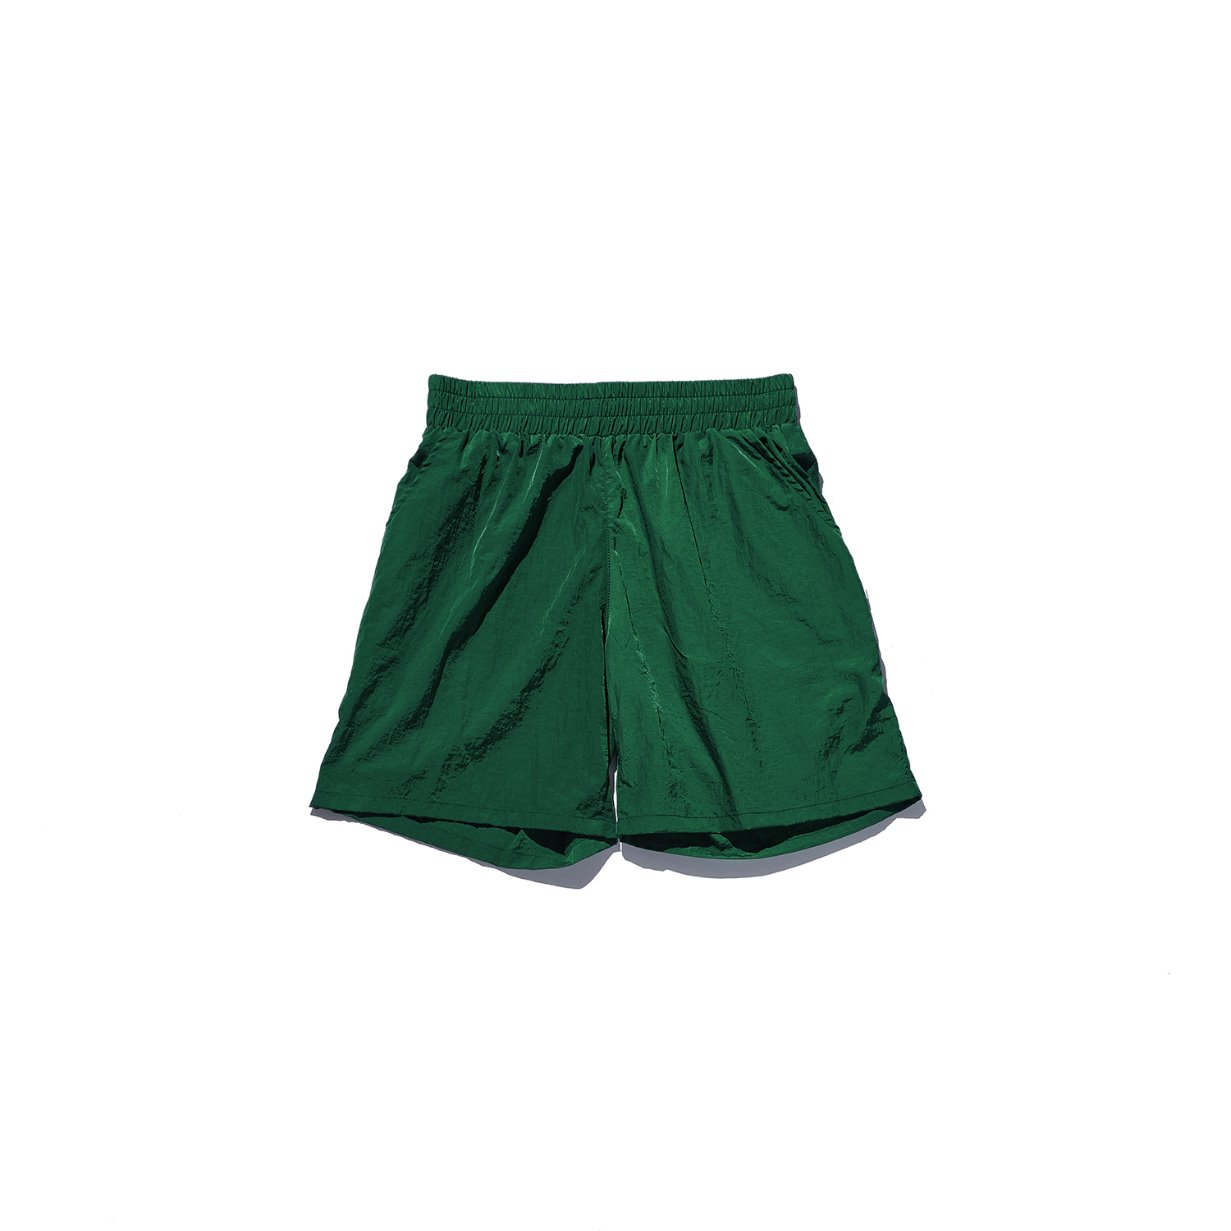 ESSAY.4 IGNITION GREEN SHORT PANTS